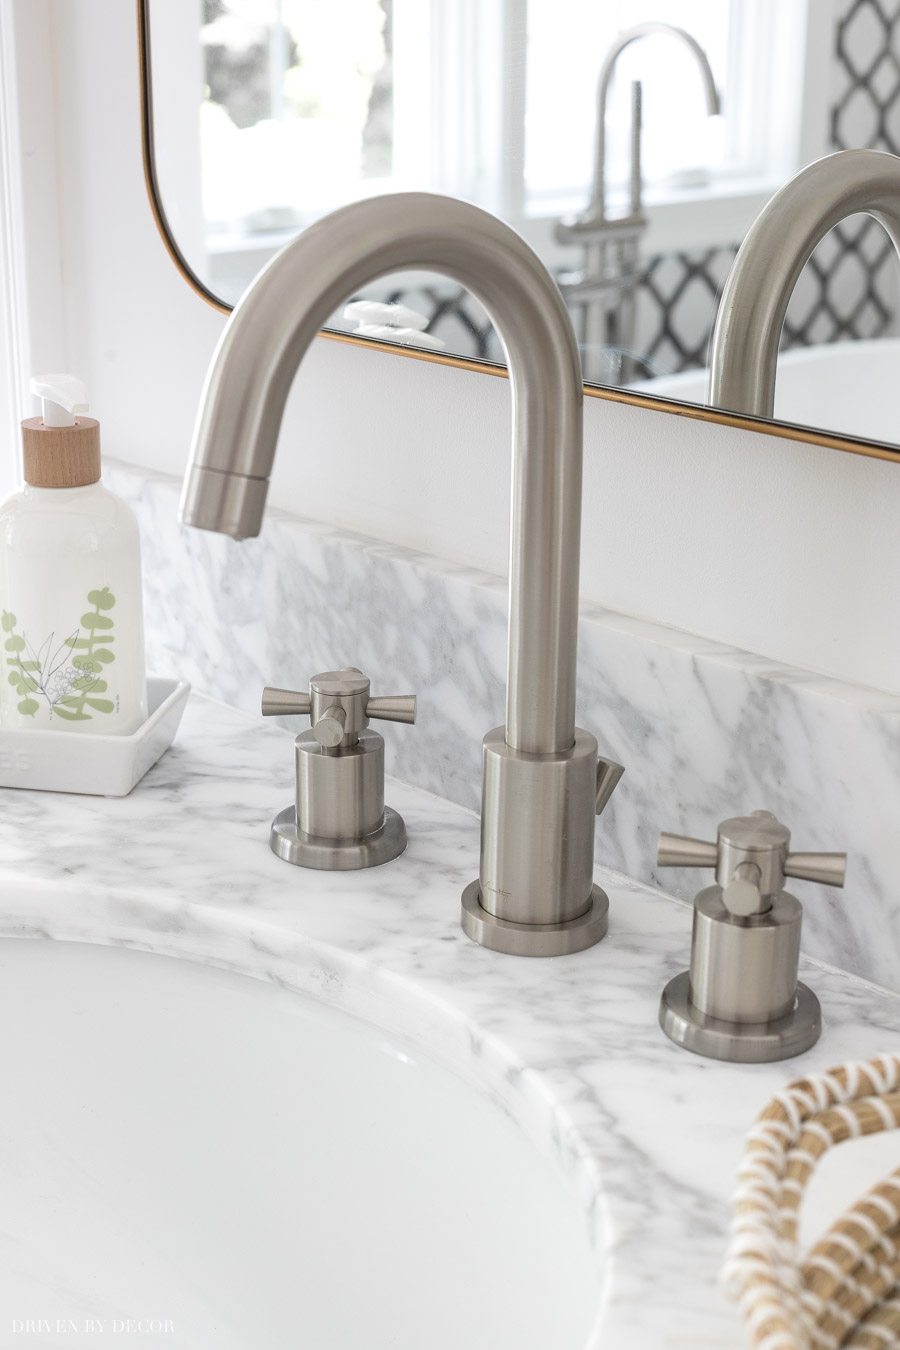 Gorgeous high arc cross handled bathroom faucets!